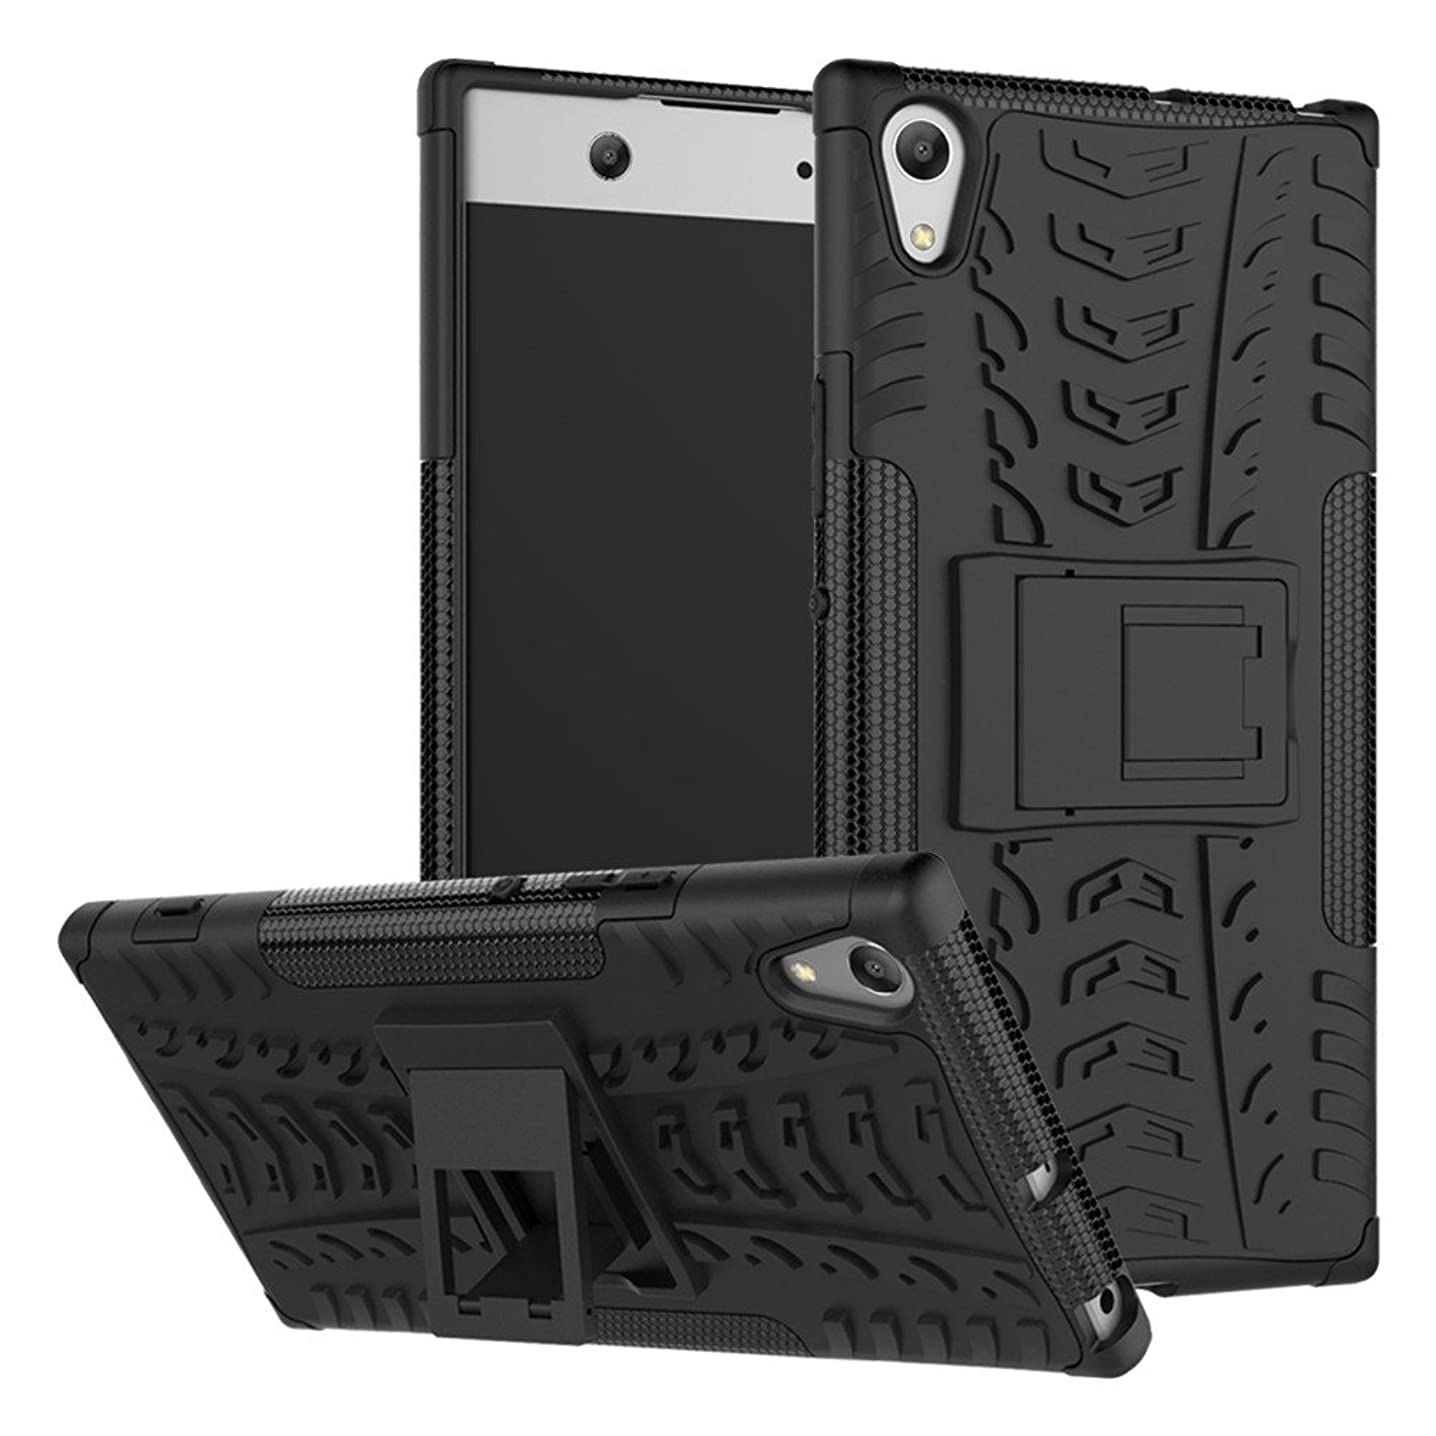 Sony Xperia XA1 Ultra case,Yiakeng Shock Absorbing Dual Layer Protective Fit Armor Case Cover Shell for Samsung Xperia XA1 Ultra Dual, Sony G3212, Sony G3226 6